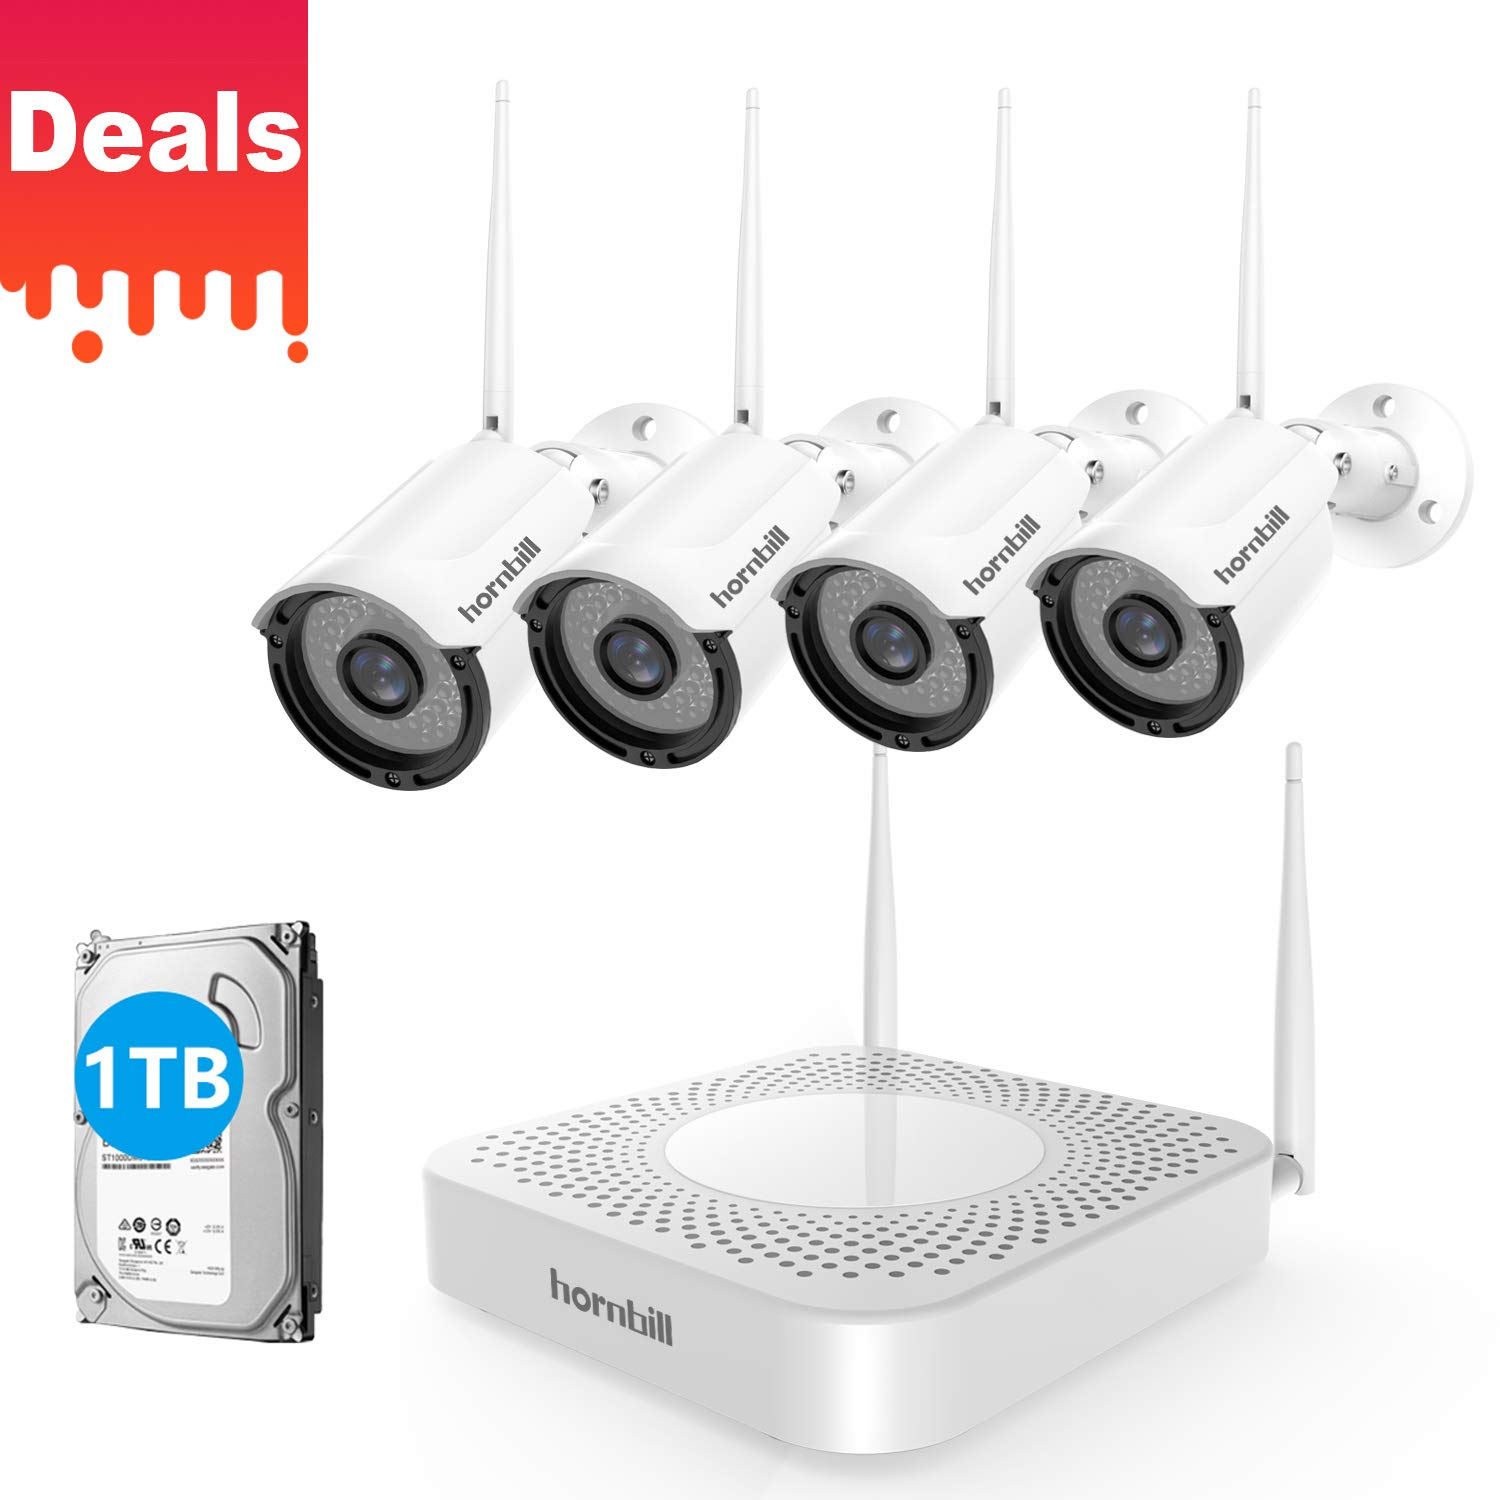 Hornbill Wireless Security Camera System 8CH 1080P Expandable Home Surveillance DVR Kits with 4pcs Outdoor Security Camera [Clear Night Vision] 1TB Hard Drive Plug Play No Montly Fee